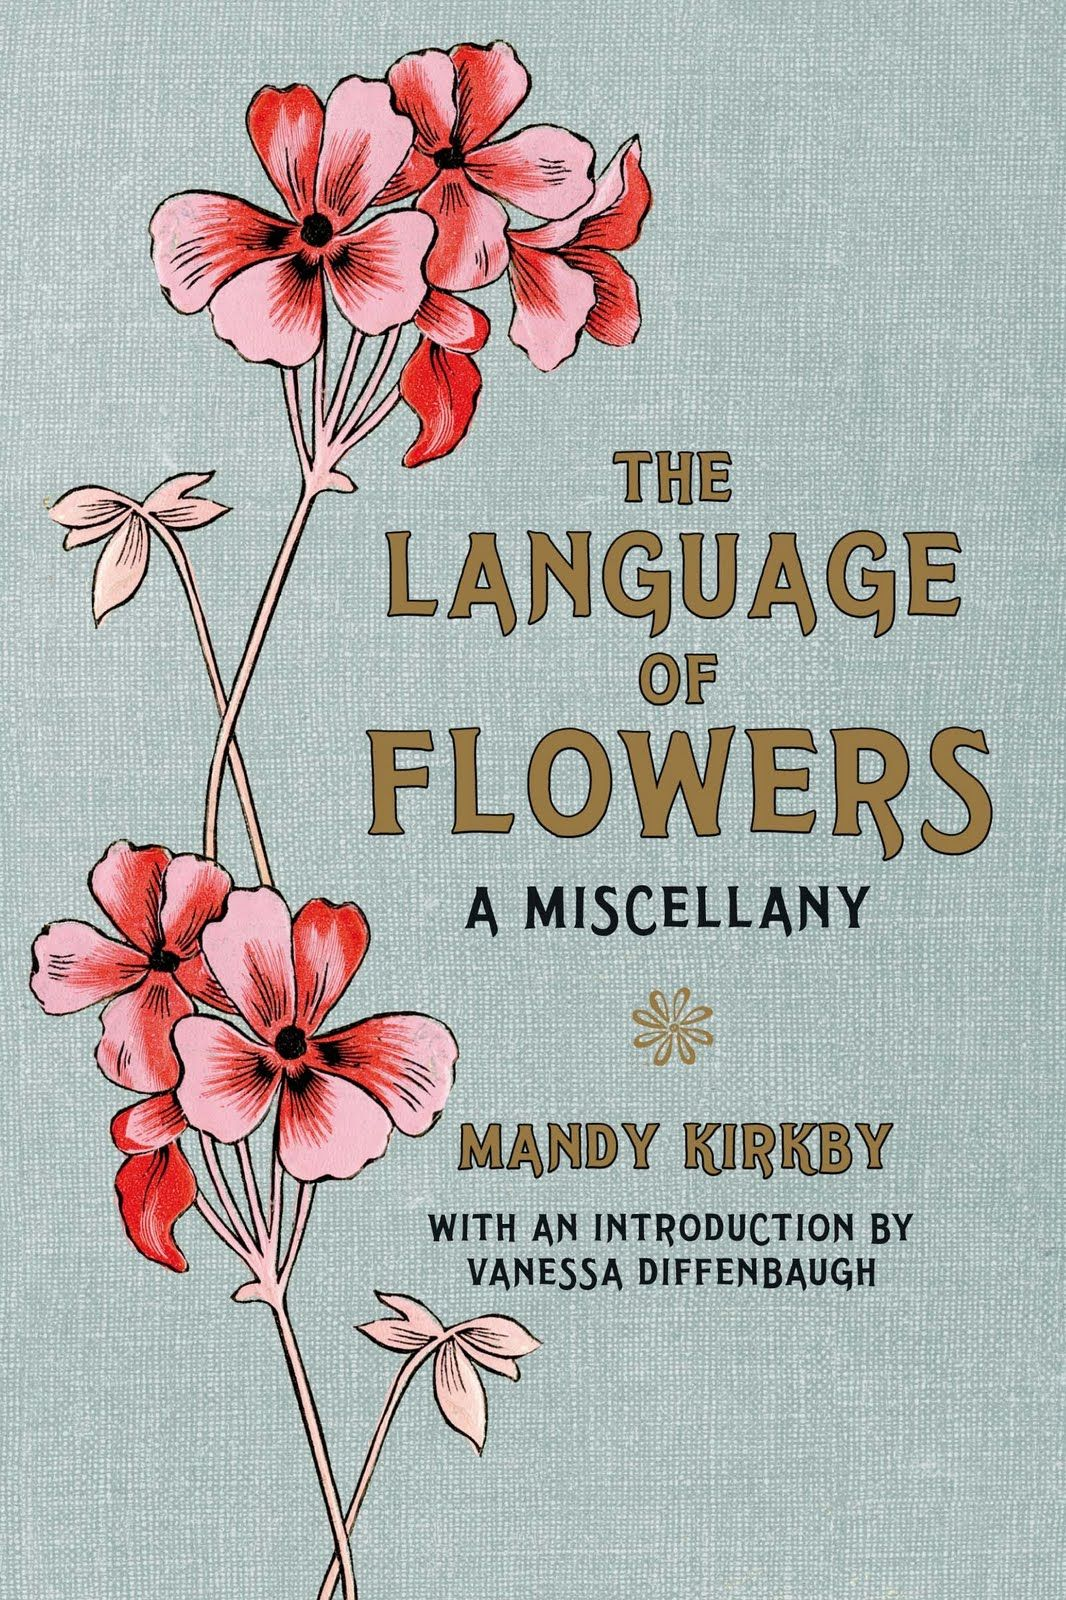 The Language of Flowers by Vanessa Diffenbaugh (With